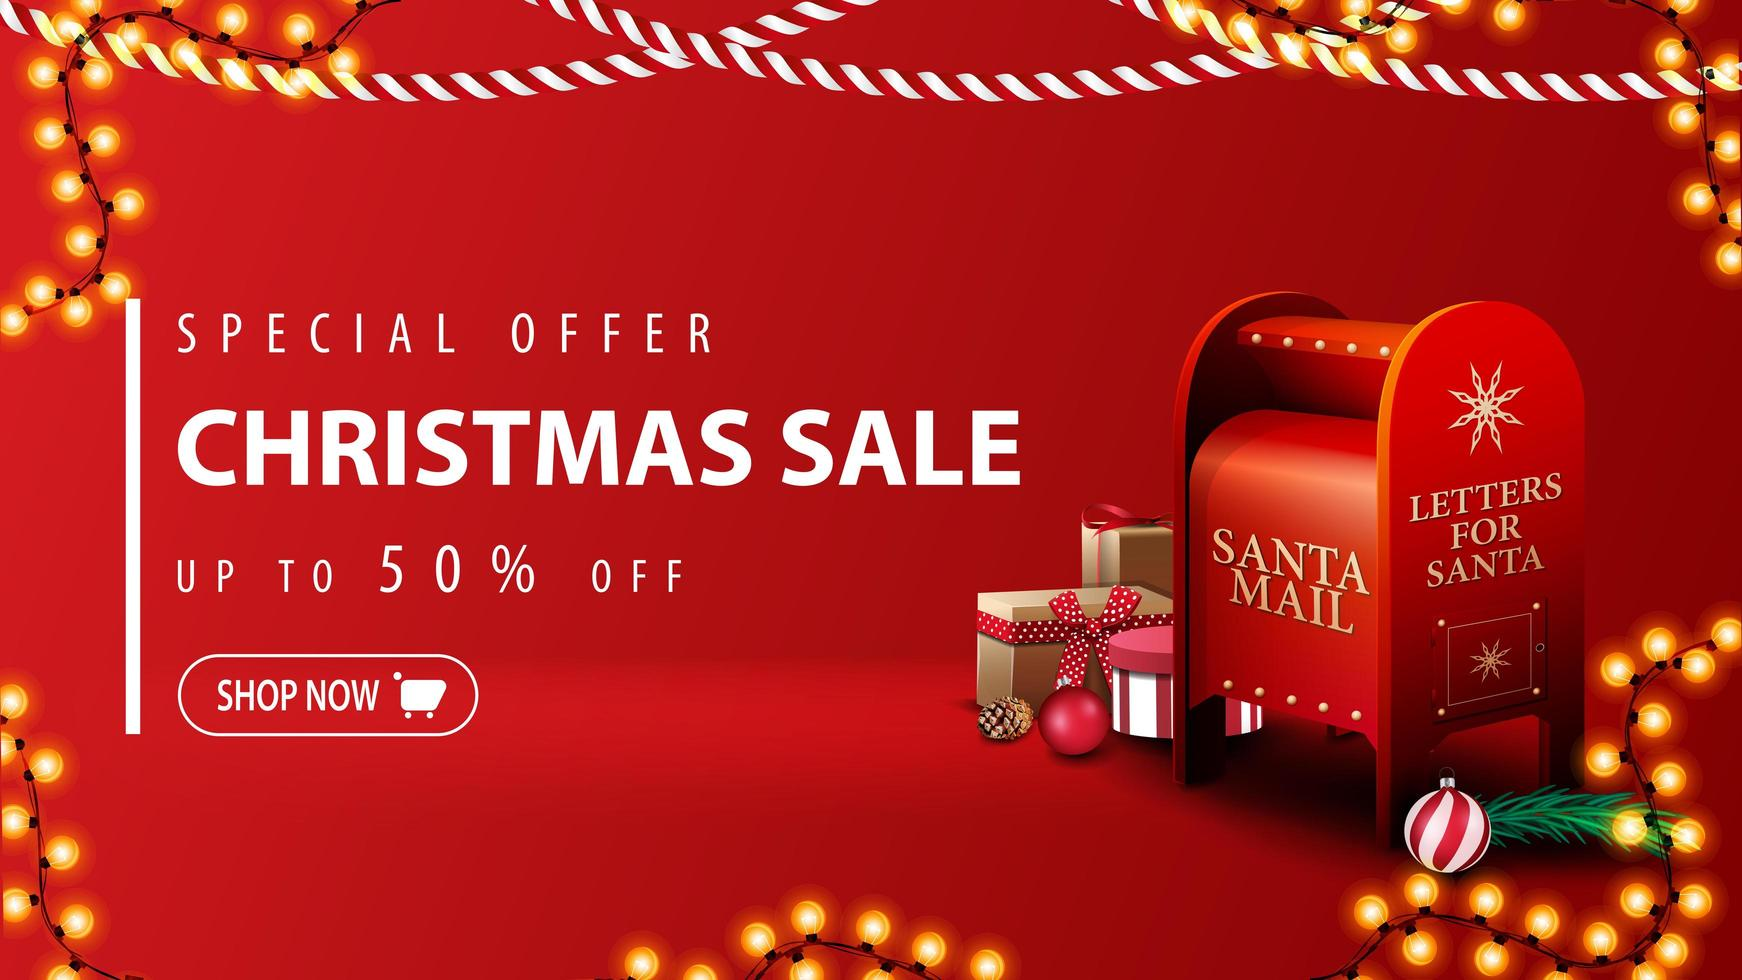 Special offer, Christmas sale, up to 50 off, modern red discount banner in minimalistic style with Christmas garlands and Santa letterbox with presents vector